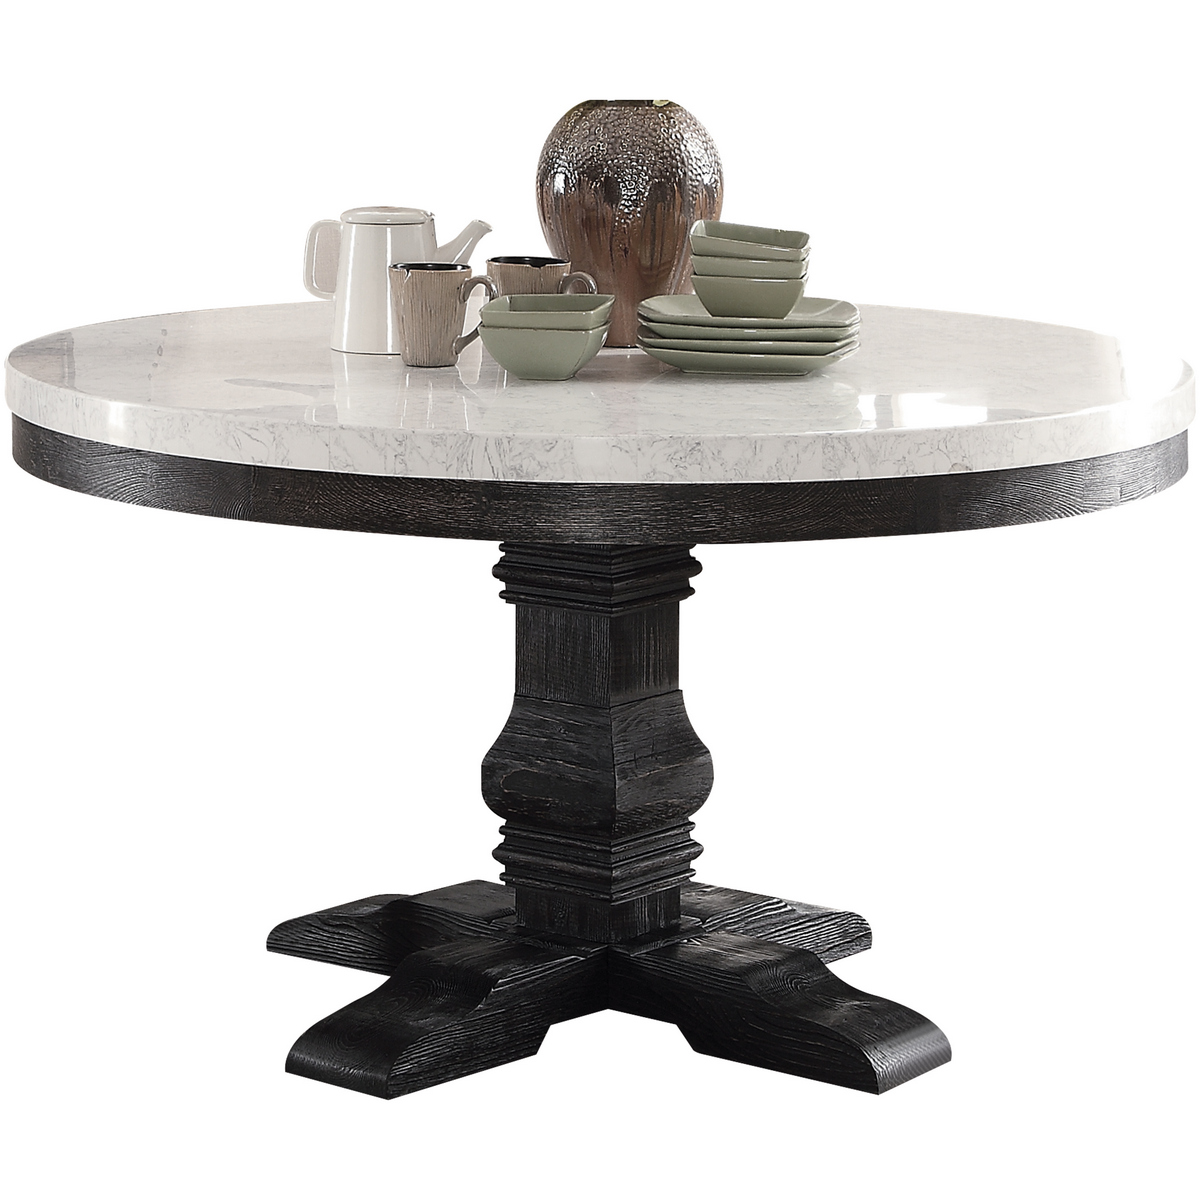 Acme Furniture Dining Table Pedestal Photo